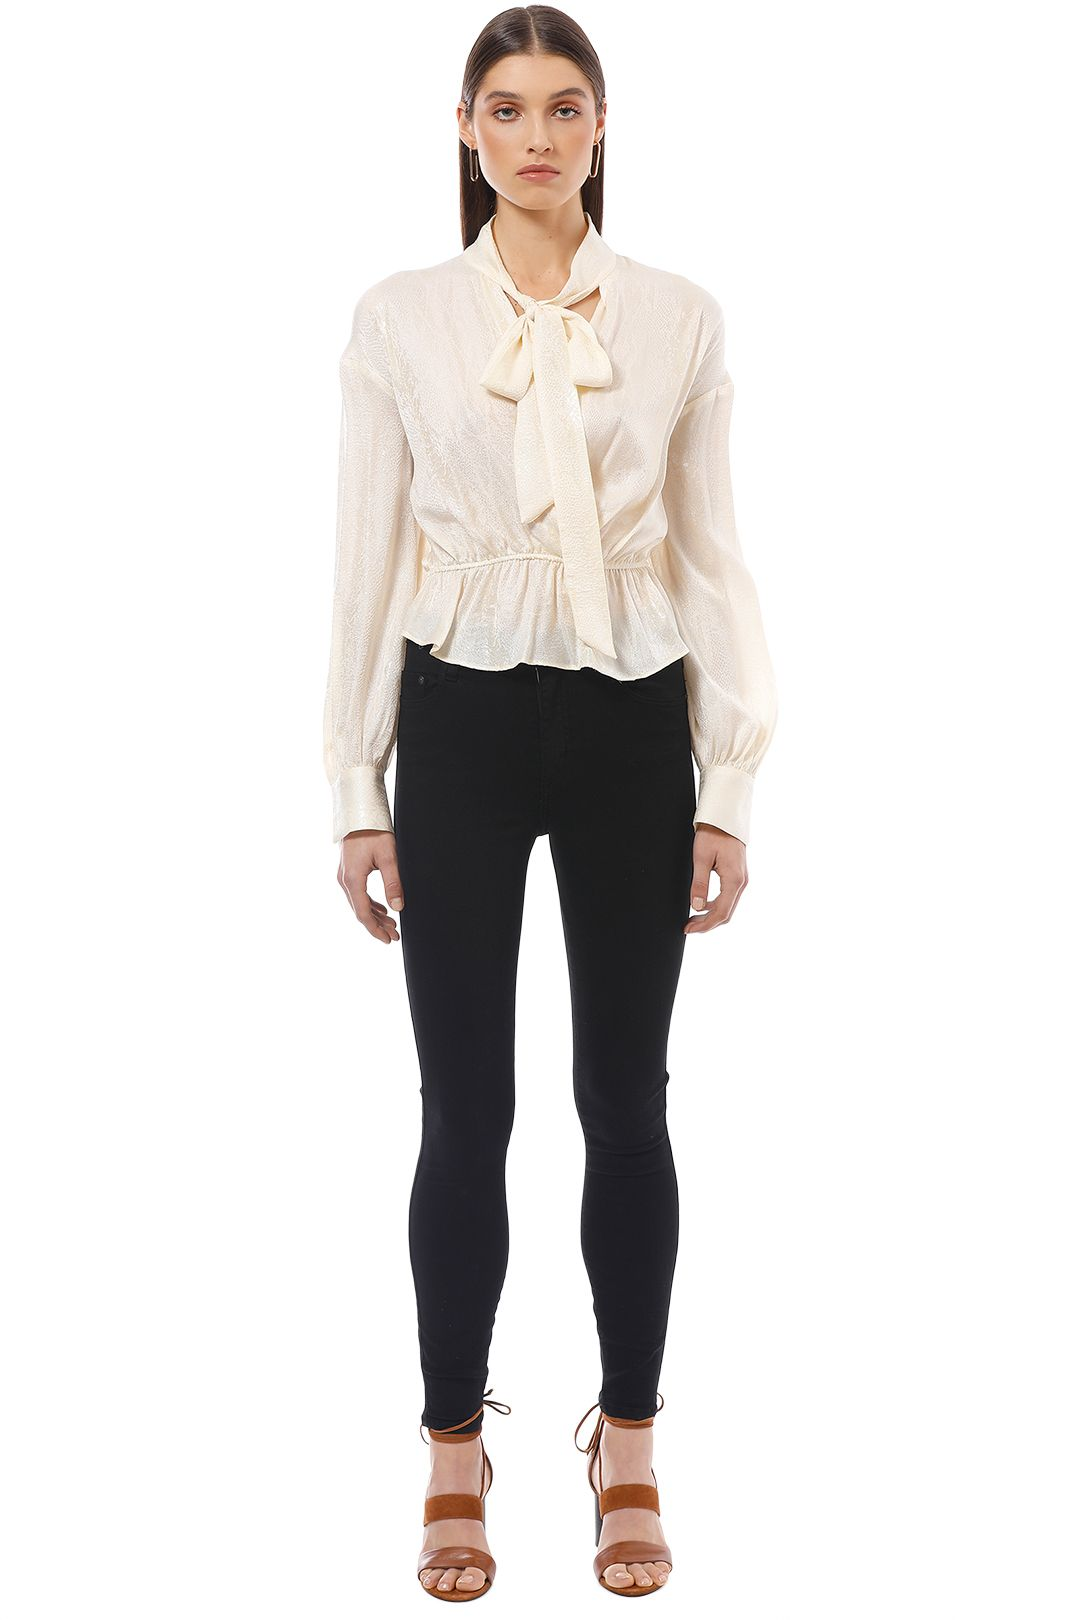 Manning Cartell - Up Scale Blouse - Cream - Front